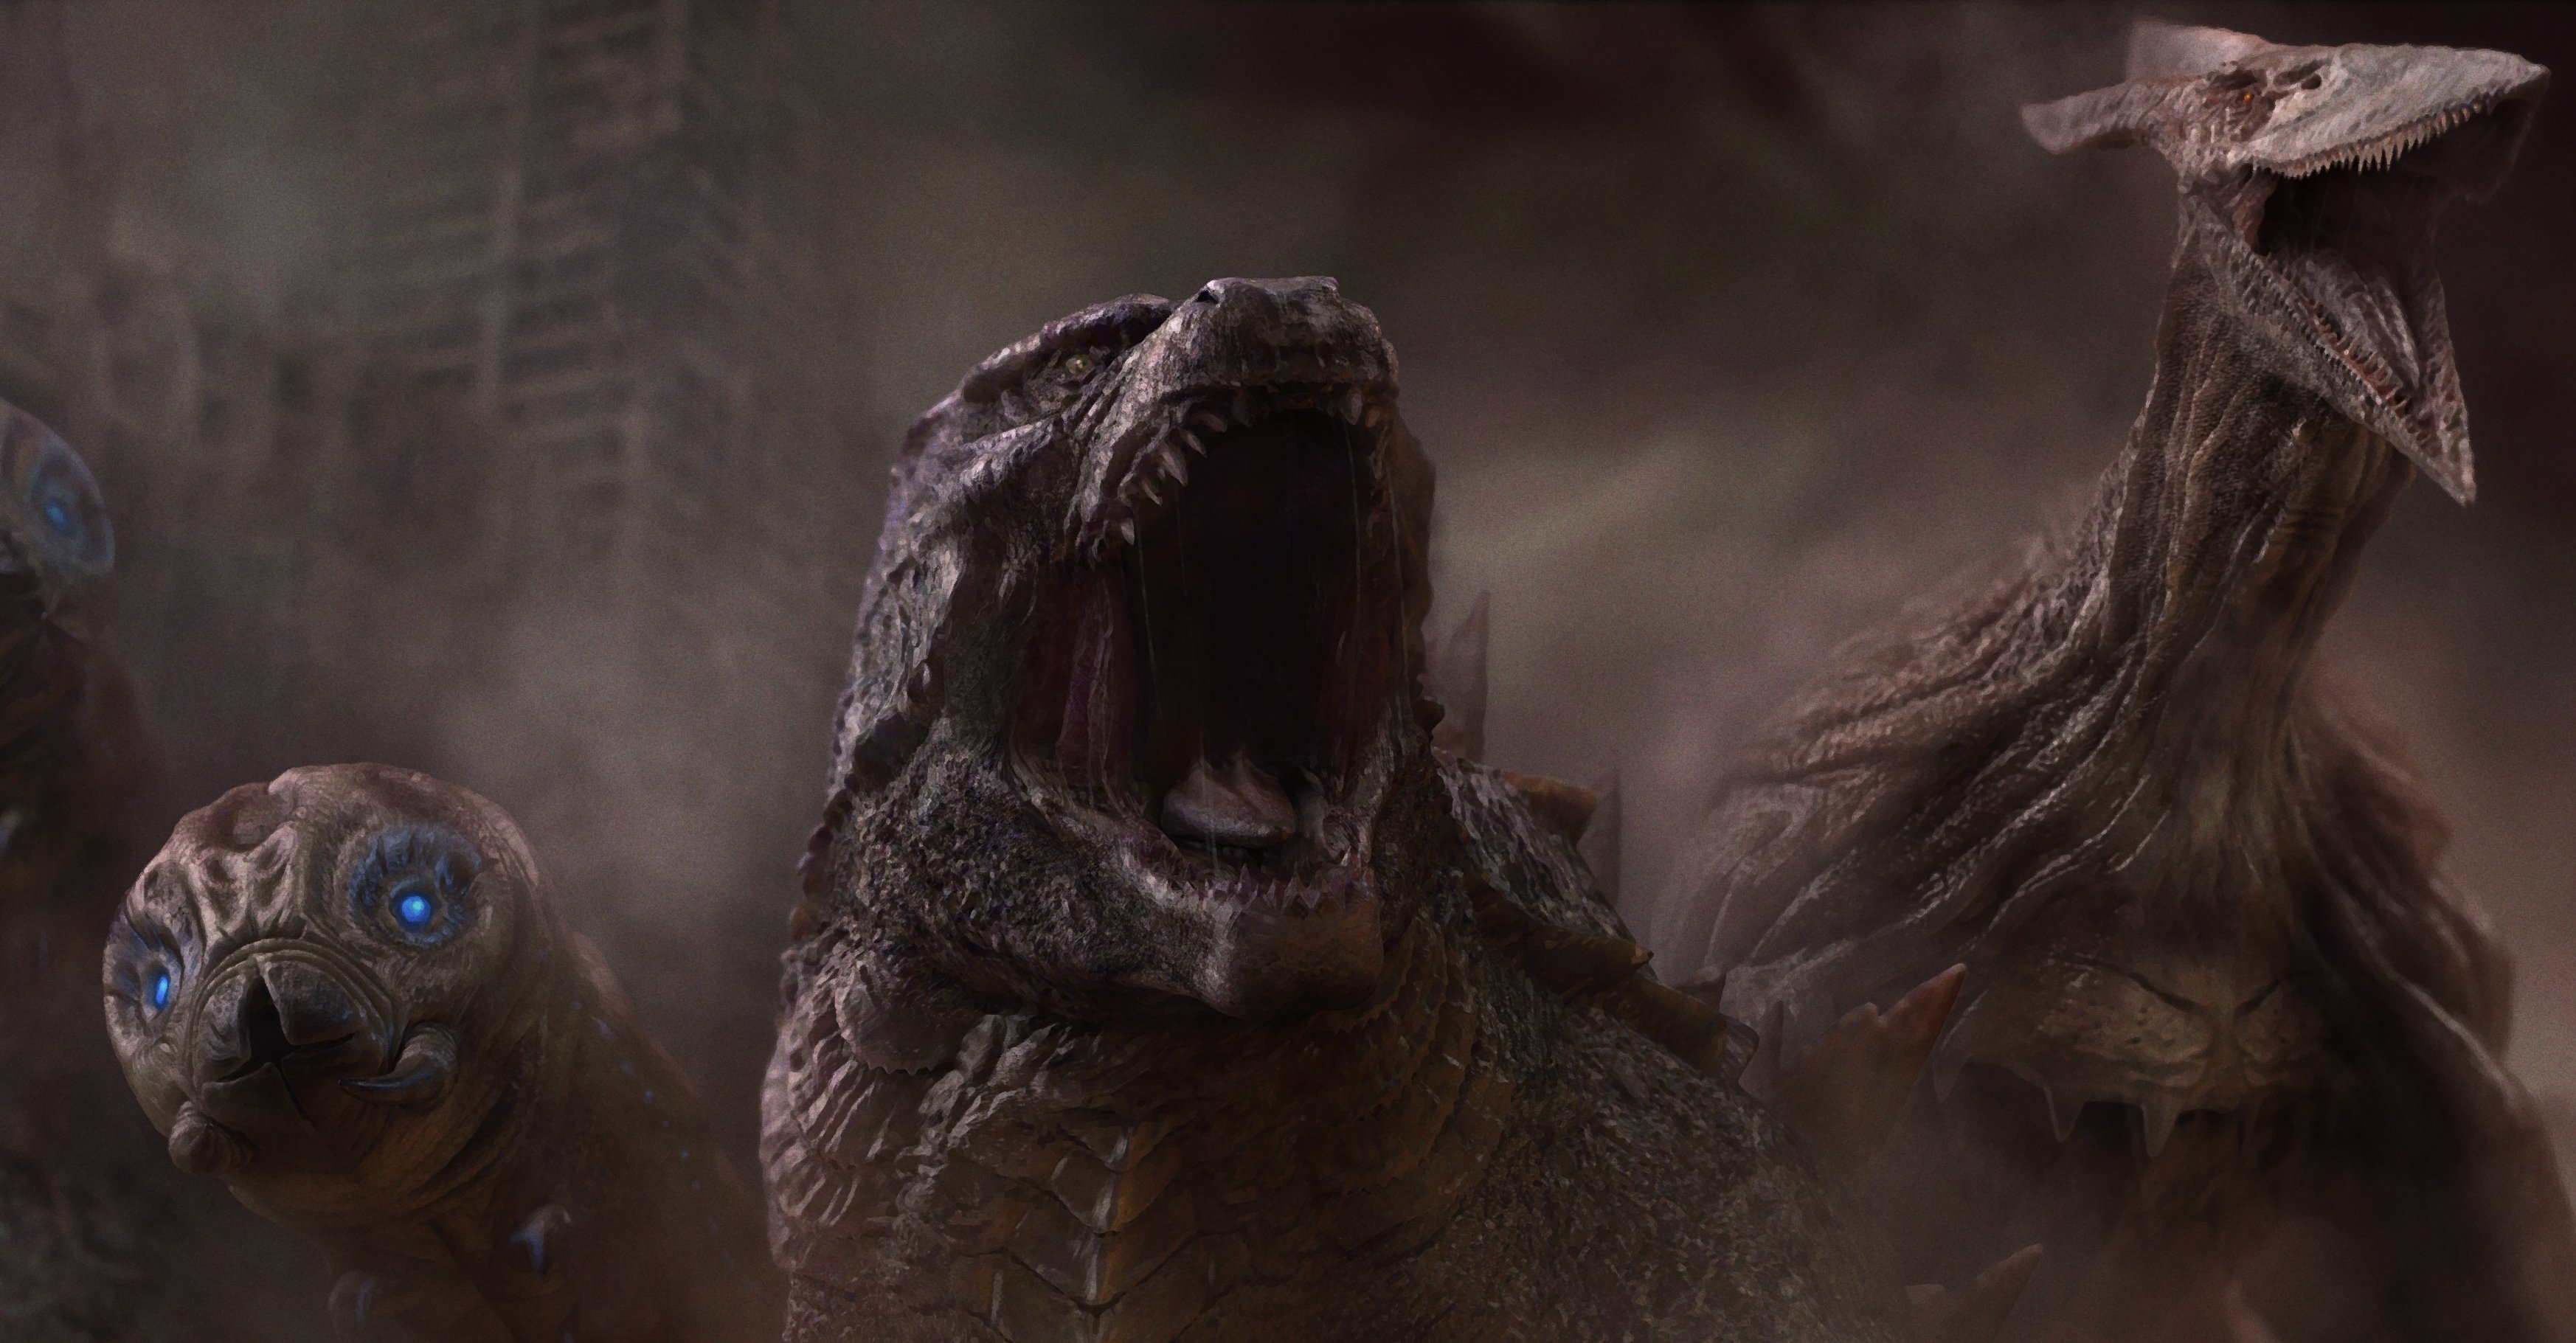 Godzilla King of the Monsters (2019) - roar scene